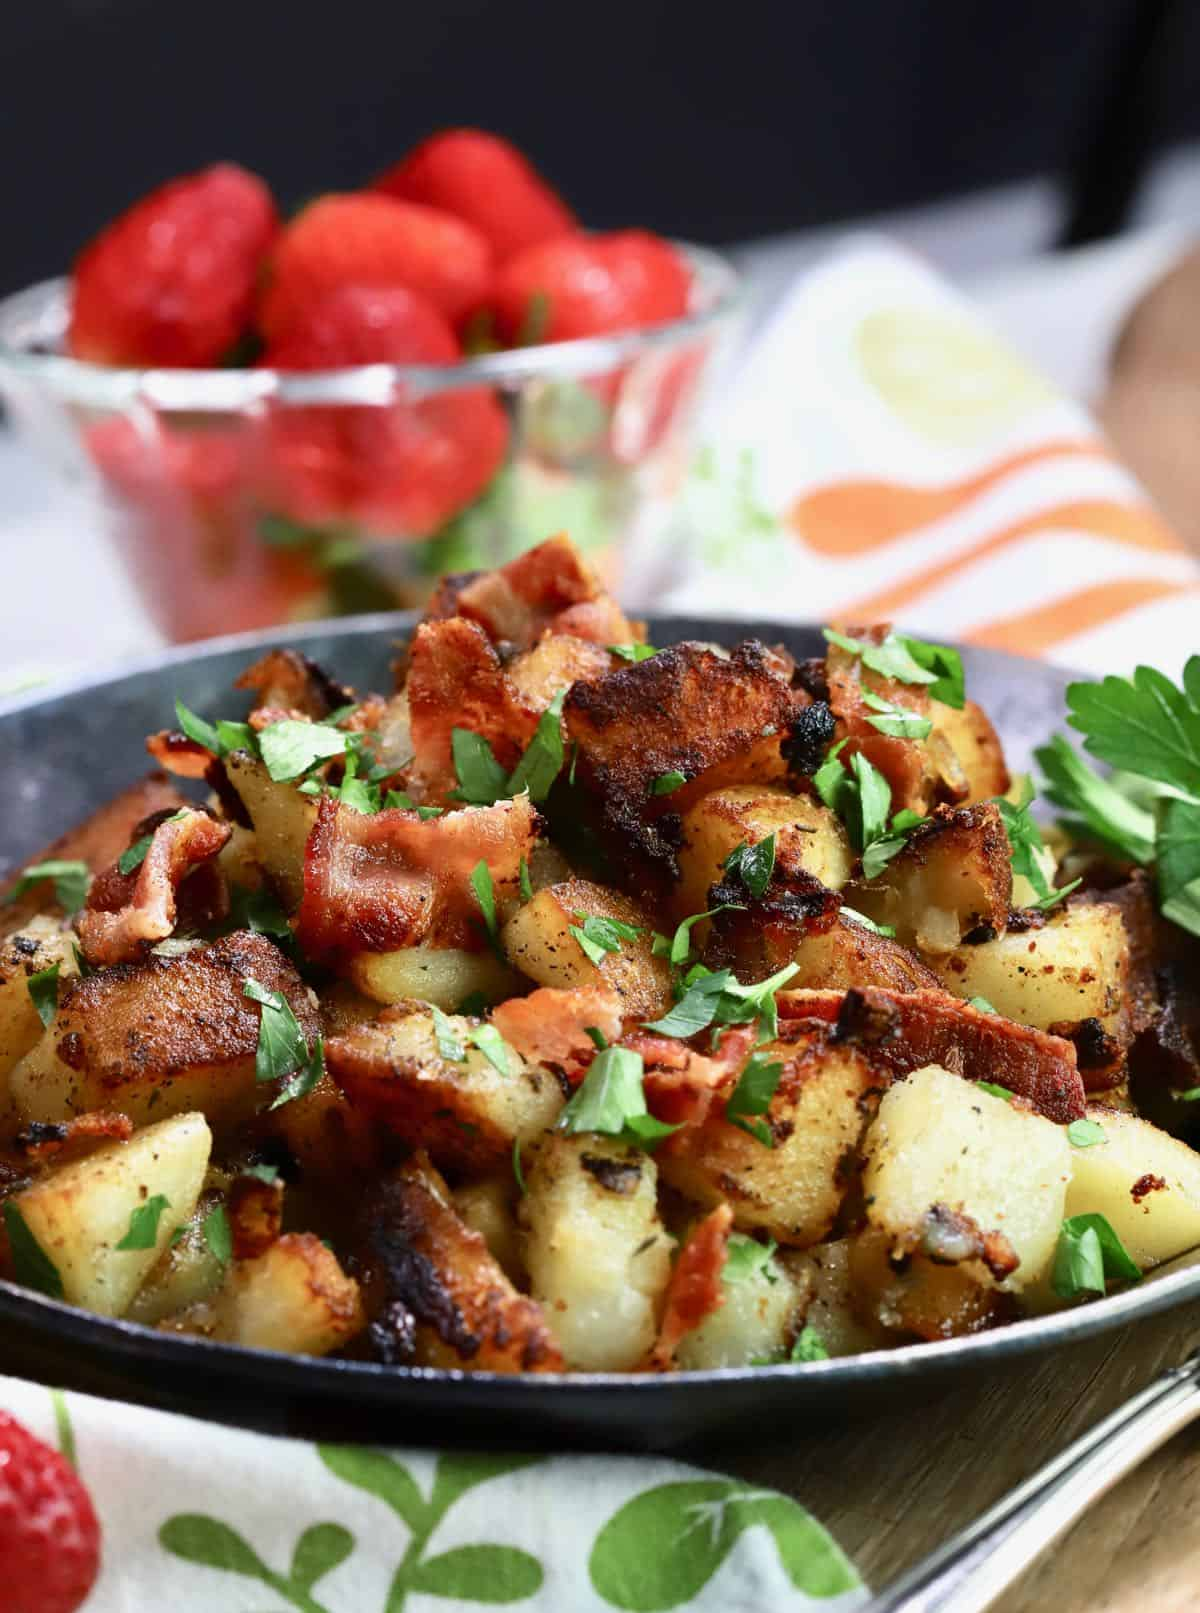 Southern fried potatoes served in a small cast iron skillet topped with bacon and parsley.